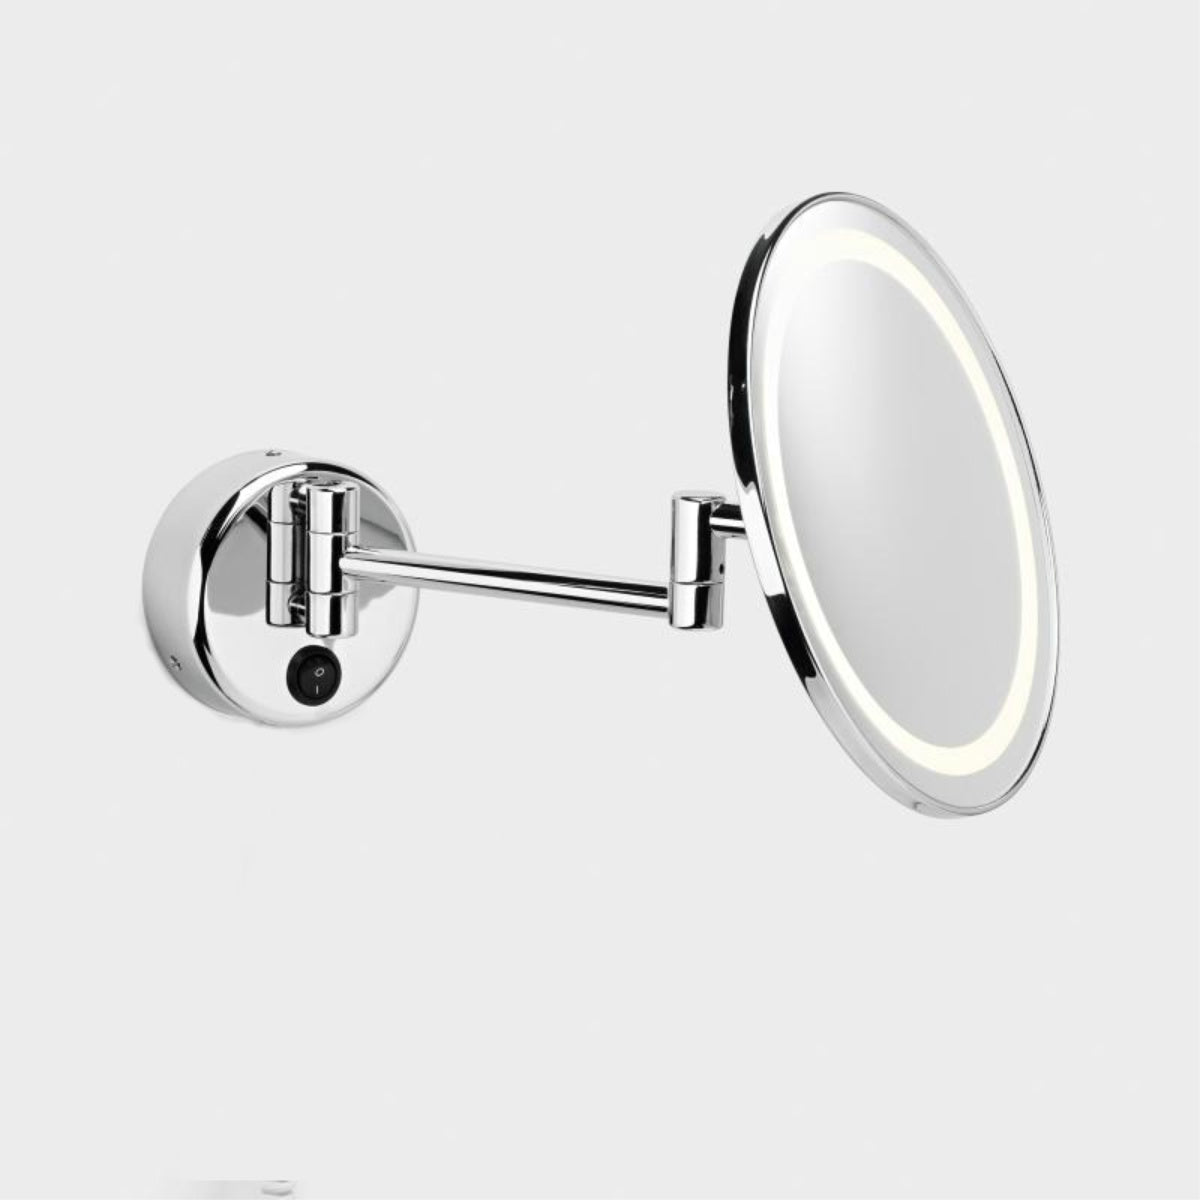 Frasco BiColour LED Mirror, 3x , Round